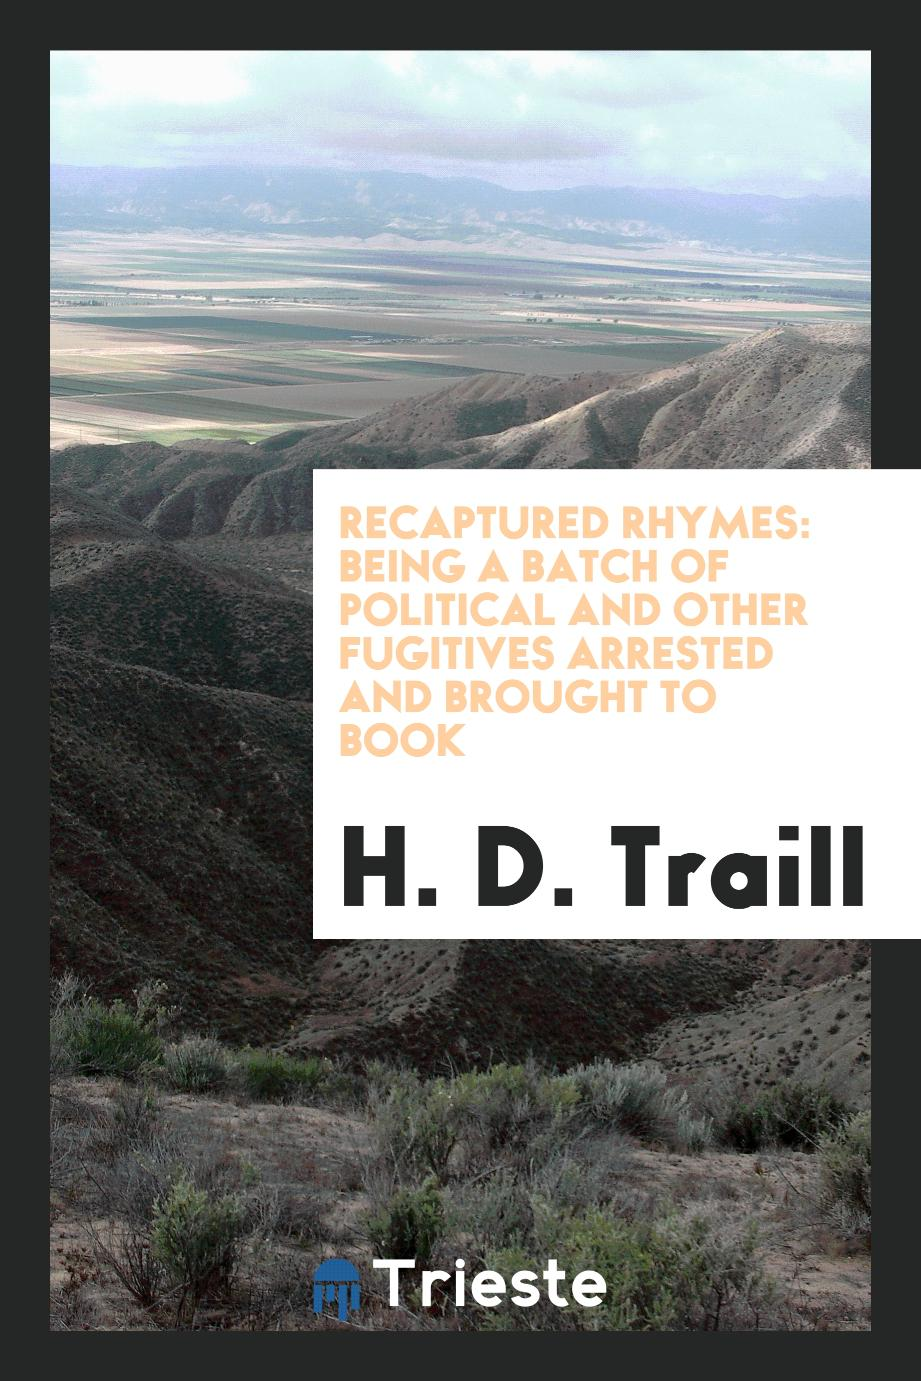 Recaptured Rhymes: Being a Batch of Political and Other Fugitives Arrested and Brought to Book